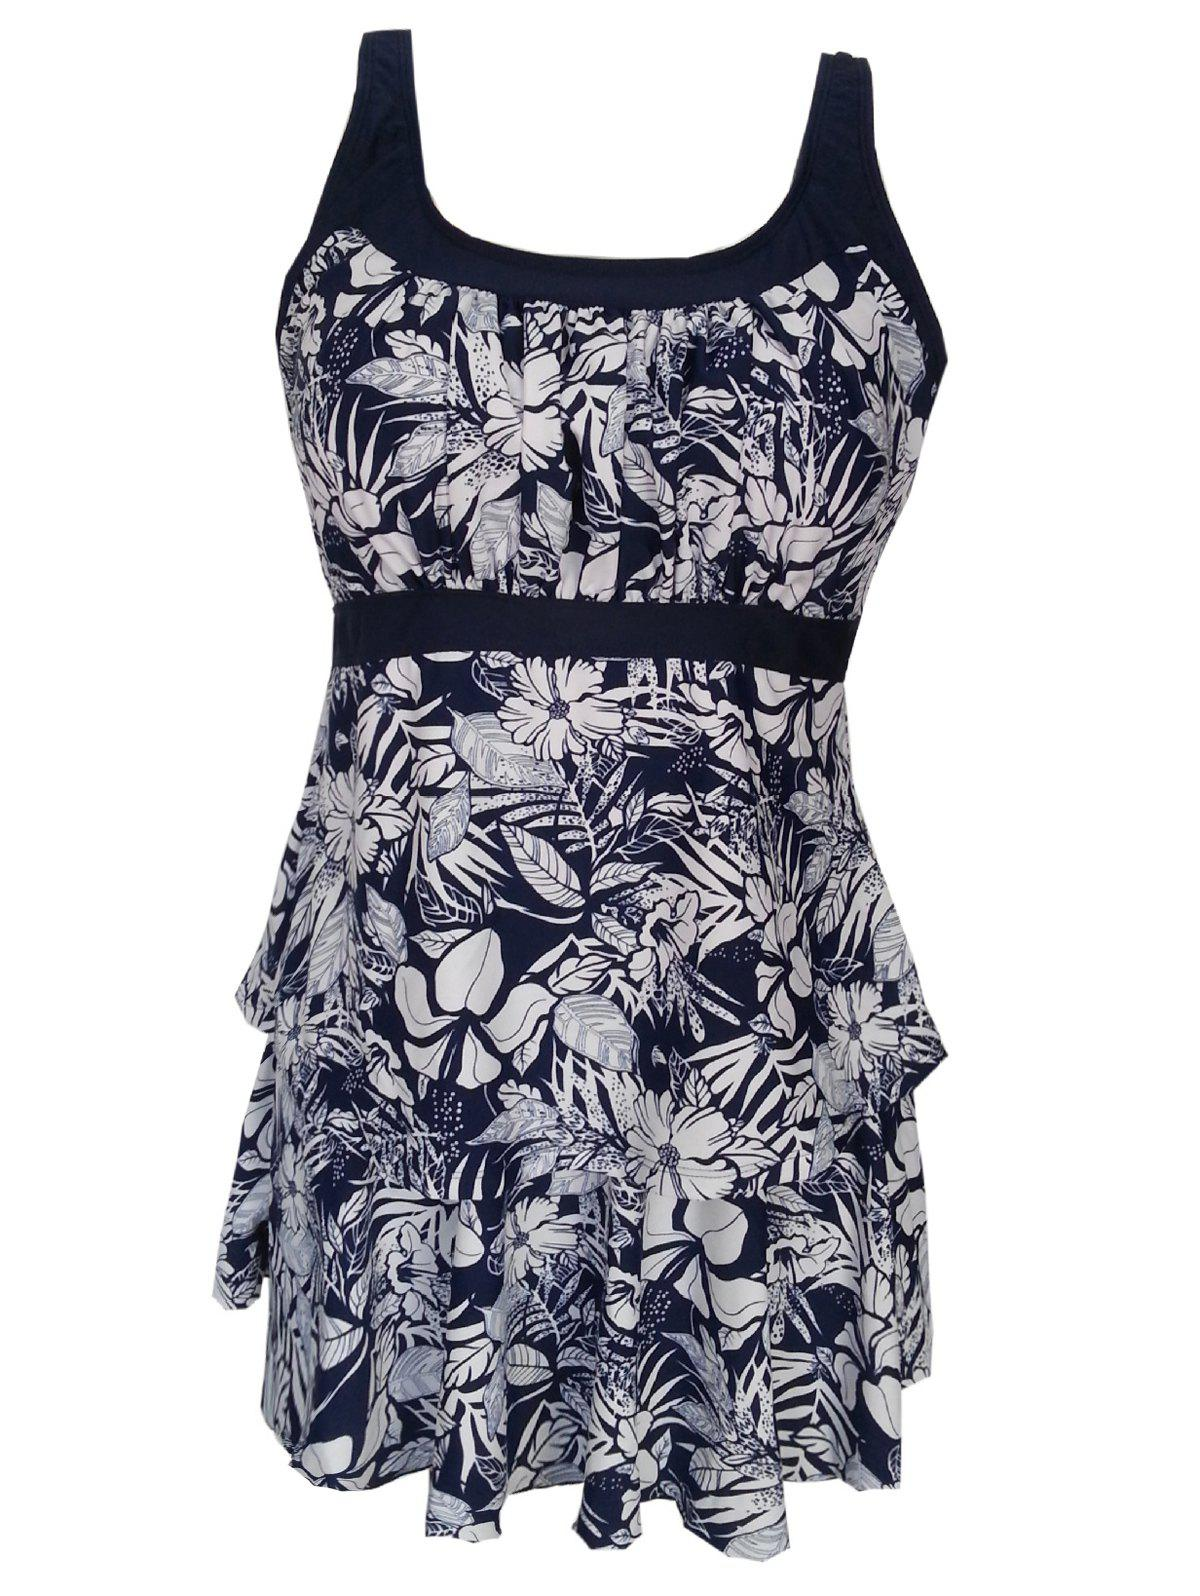 Chic Plus Size Floral Printed Tankini Swimsuit